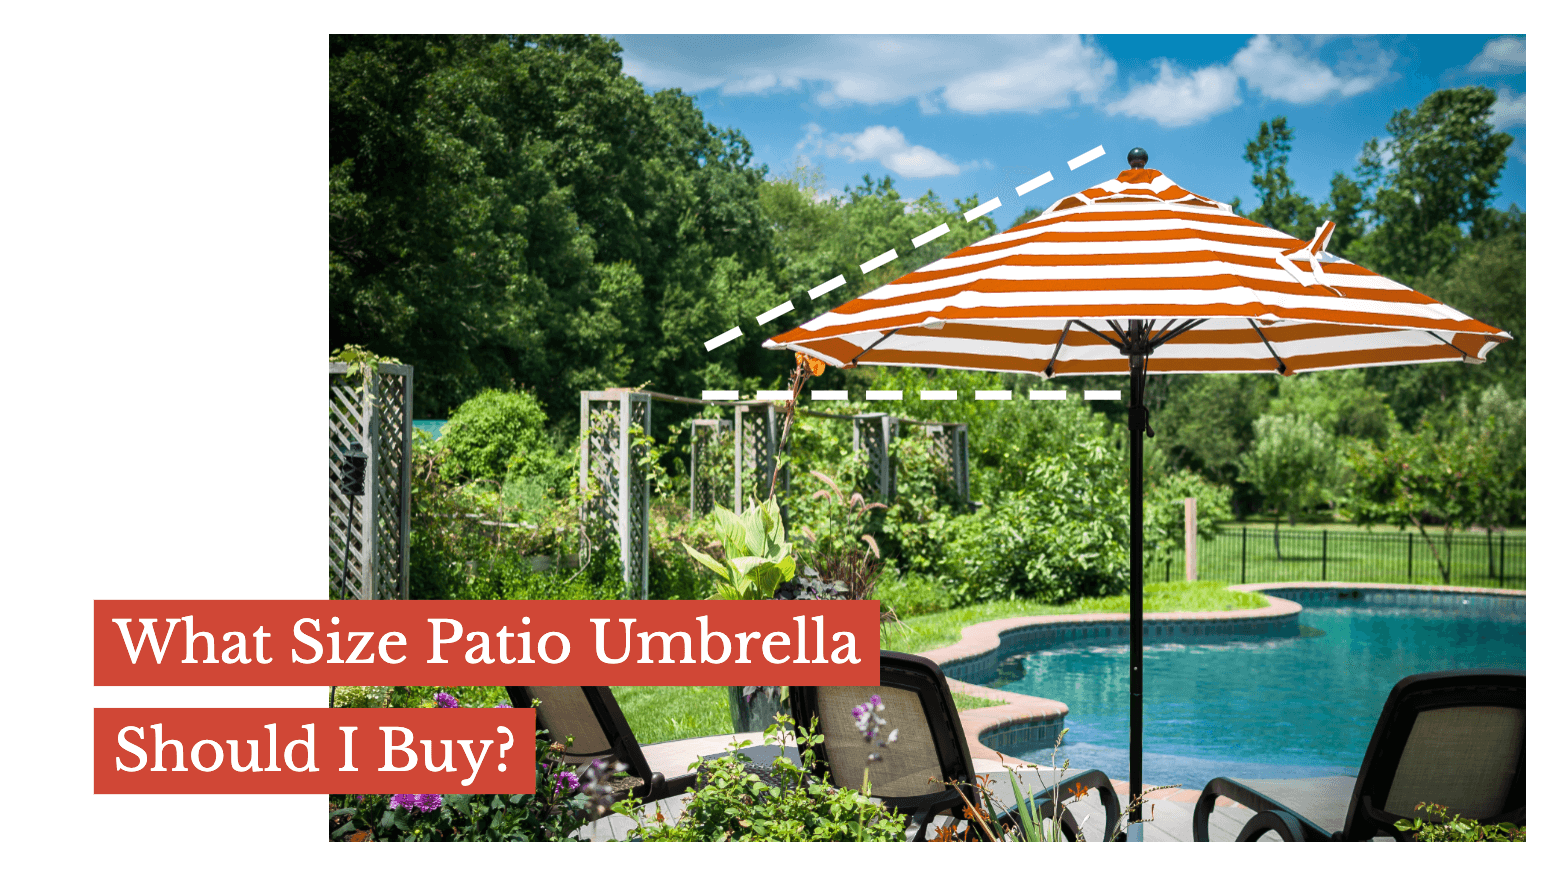 What Size Patio Umbrella Should I Buy?